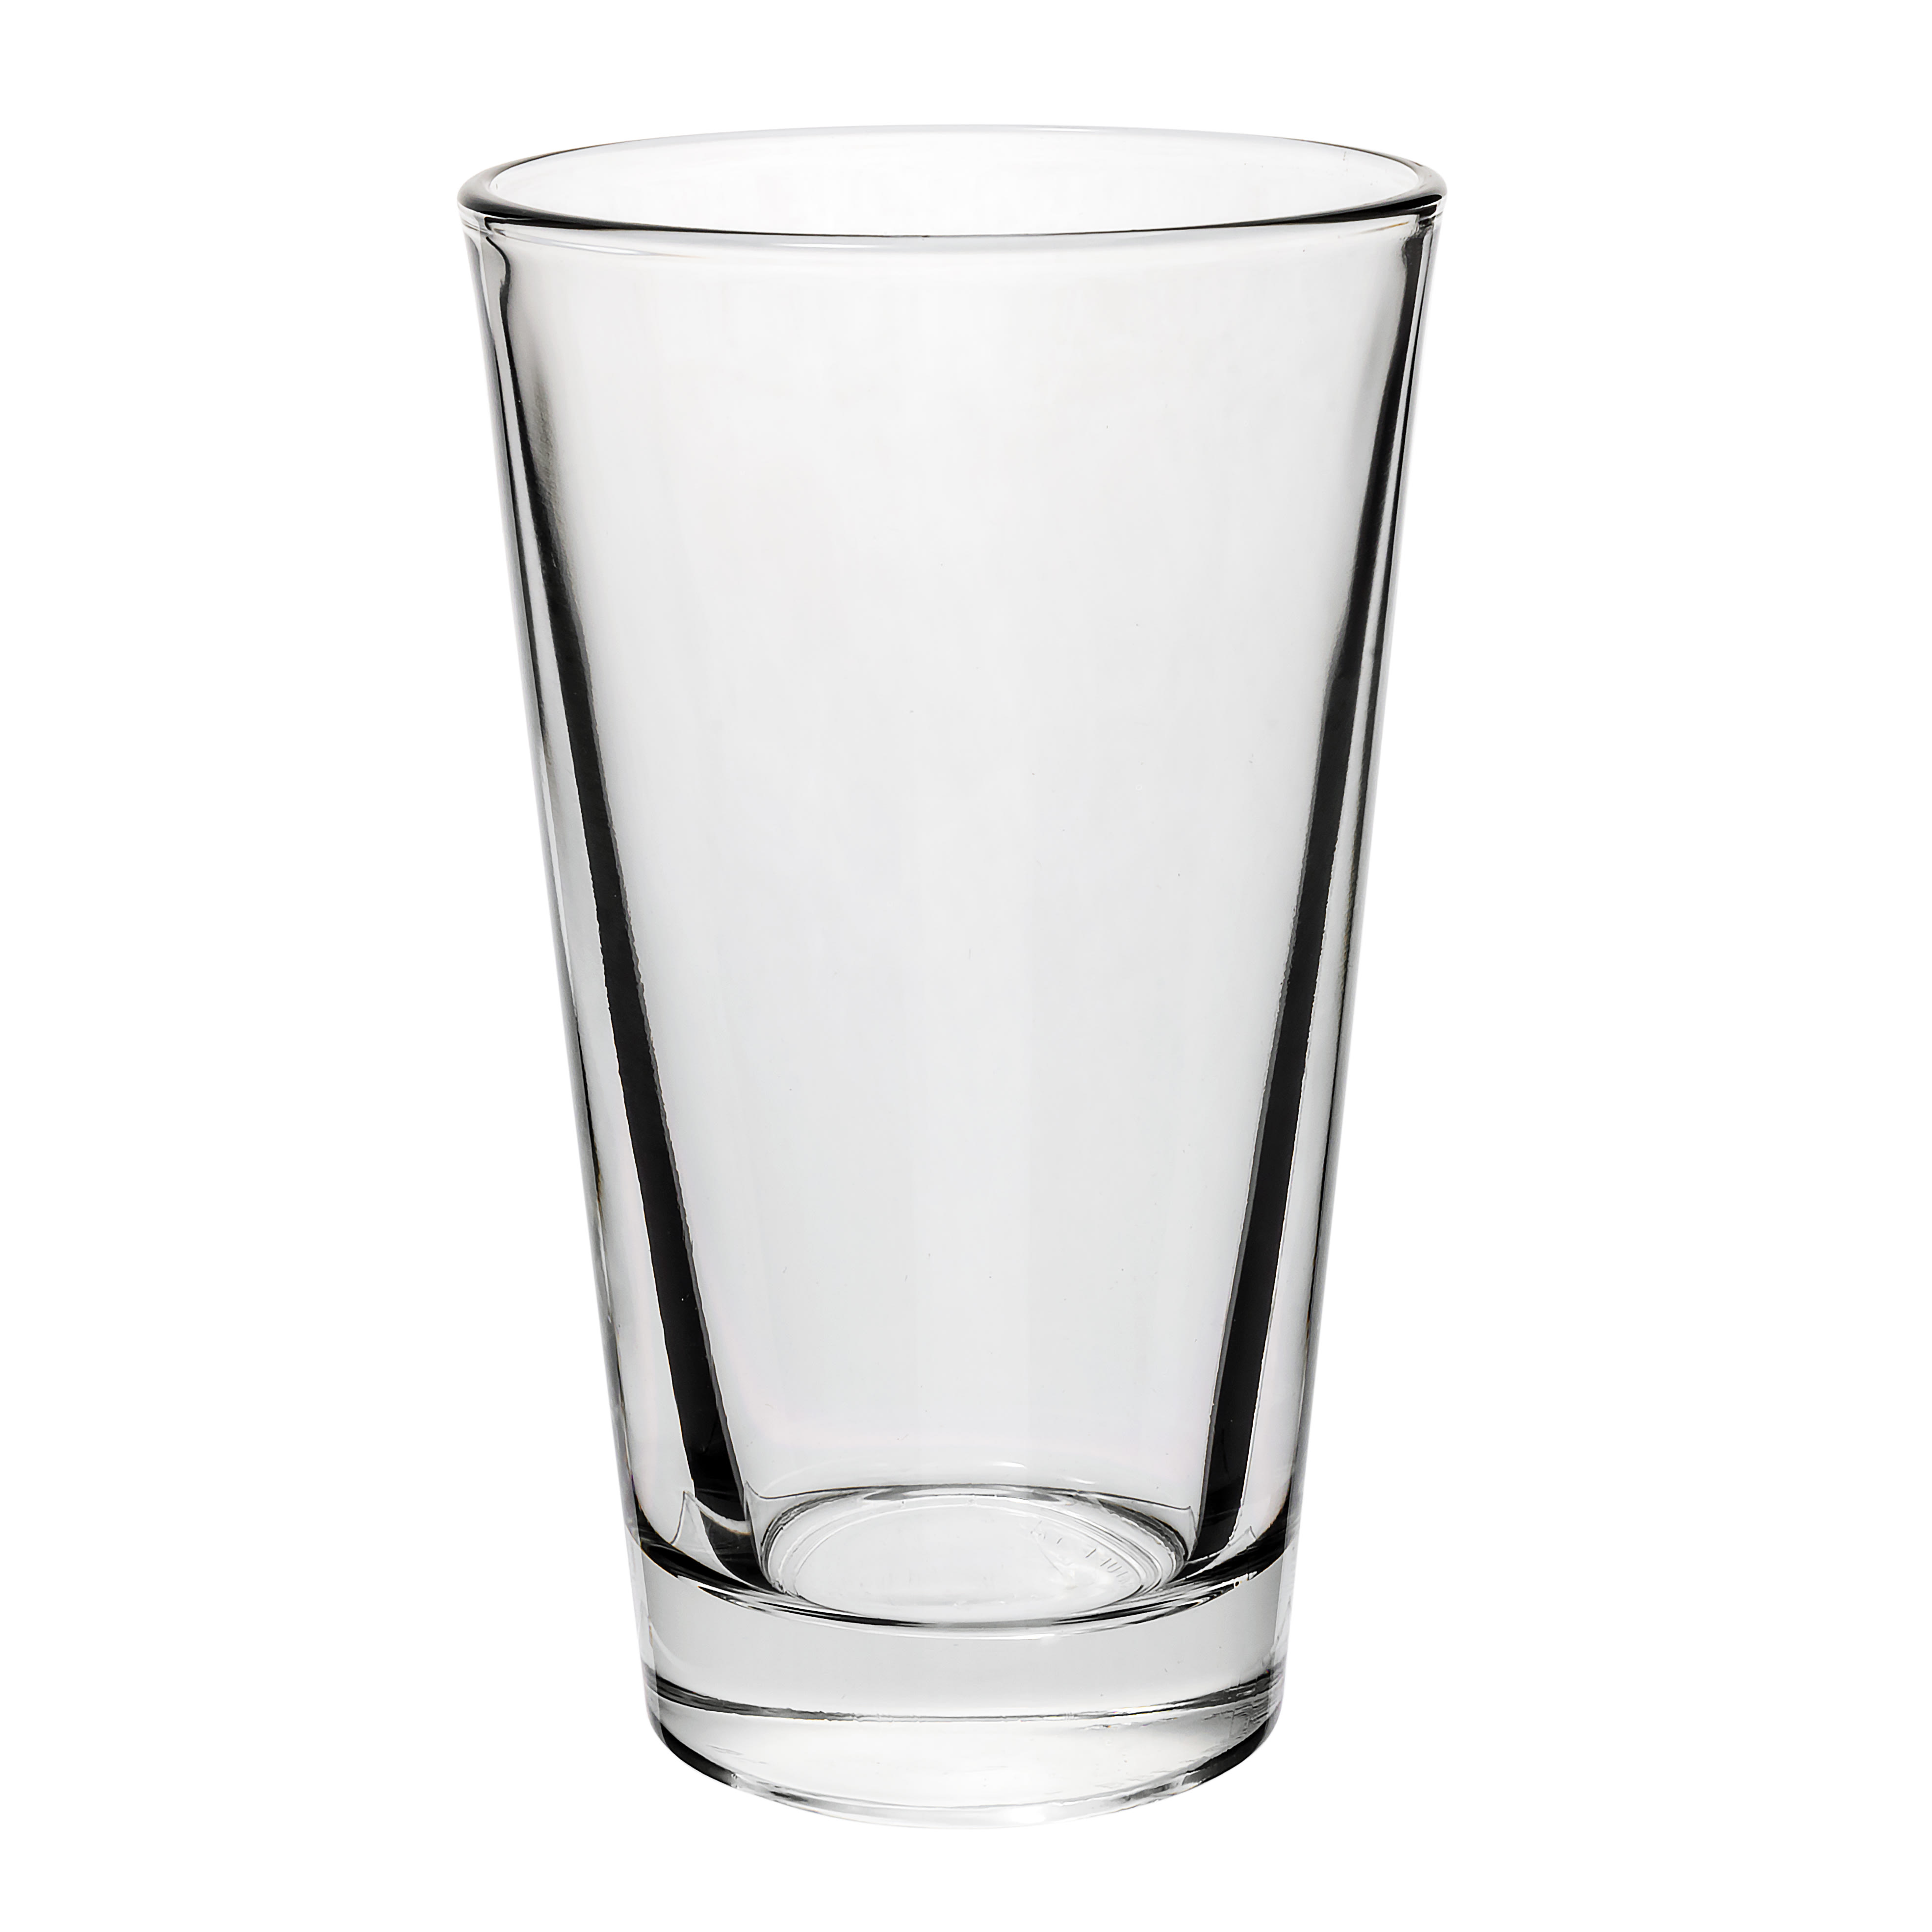 Libbey 15141 14 oz Pint Glass / Cooler Mixing Glass - DuraTuff Treated